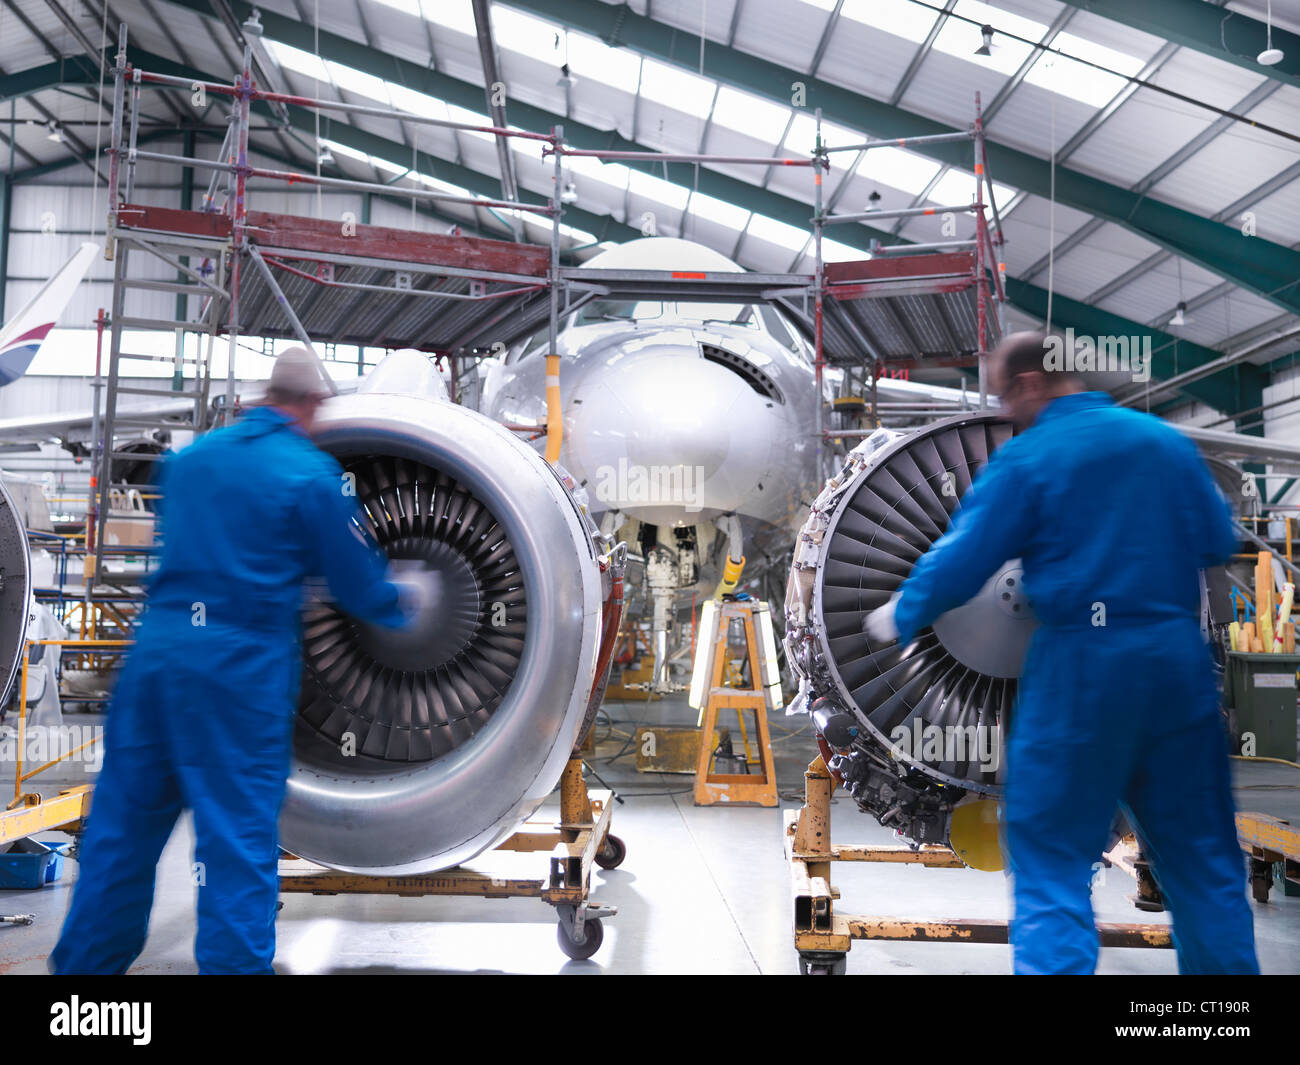 Worker pushing airplane engines on carts - Stock Image